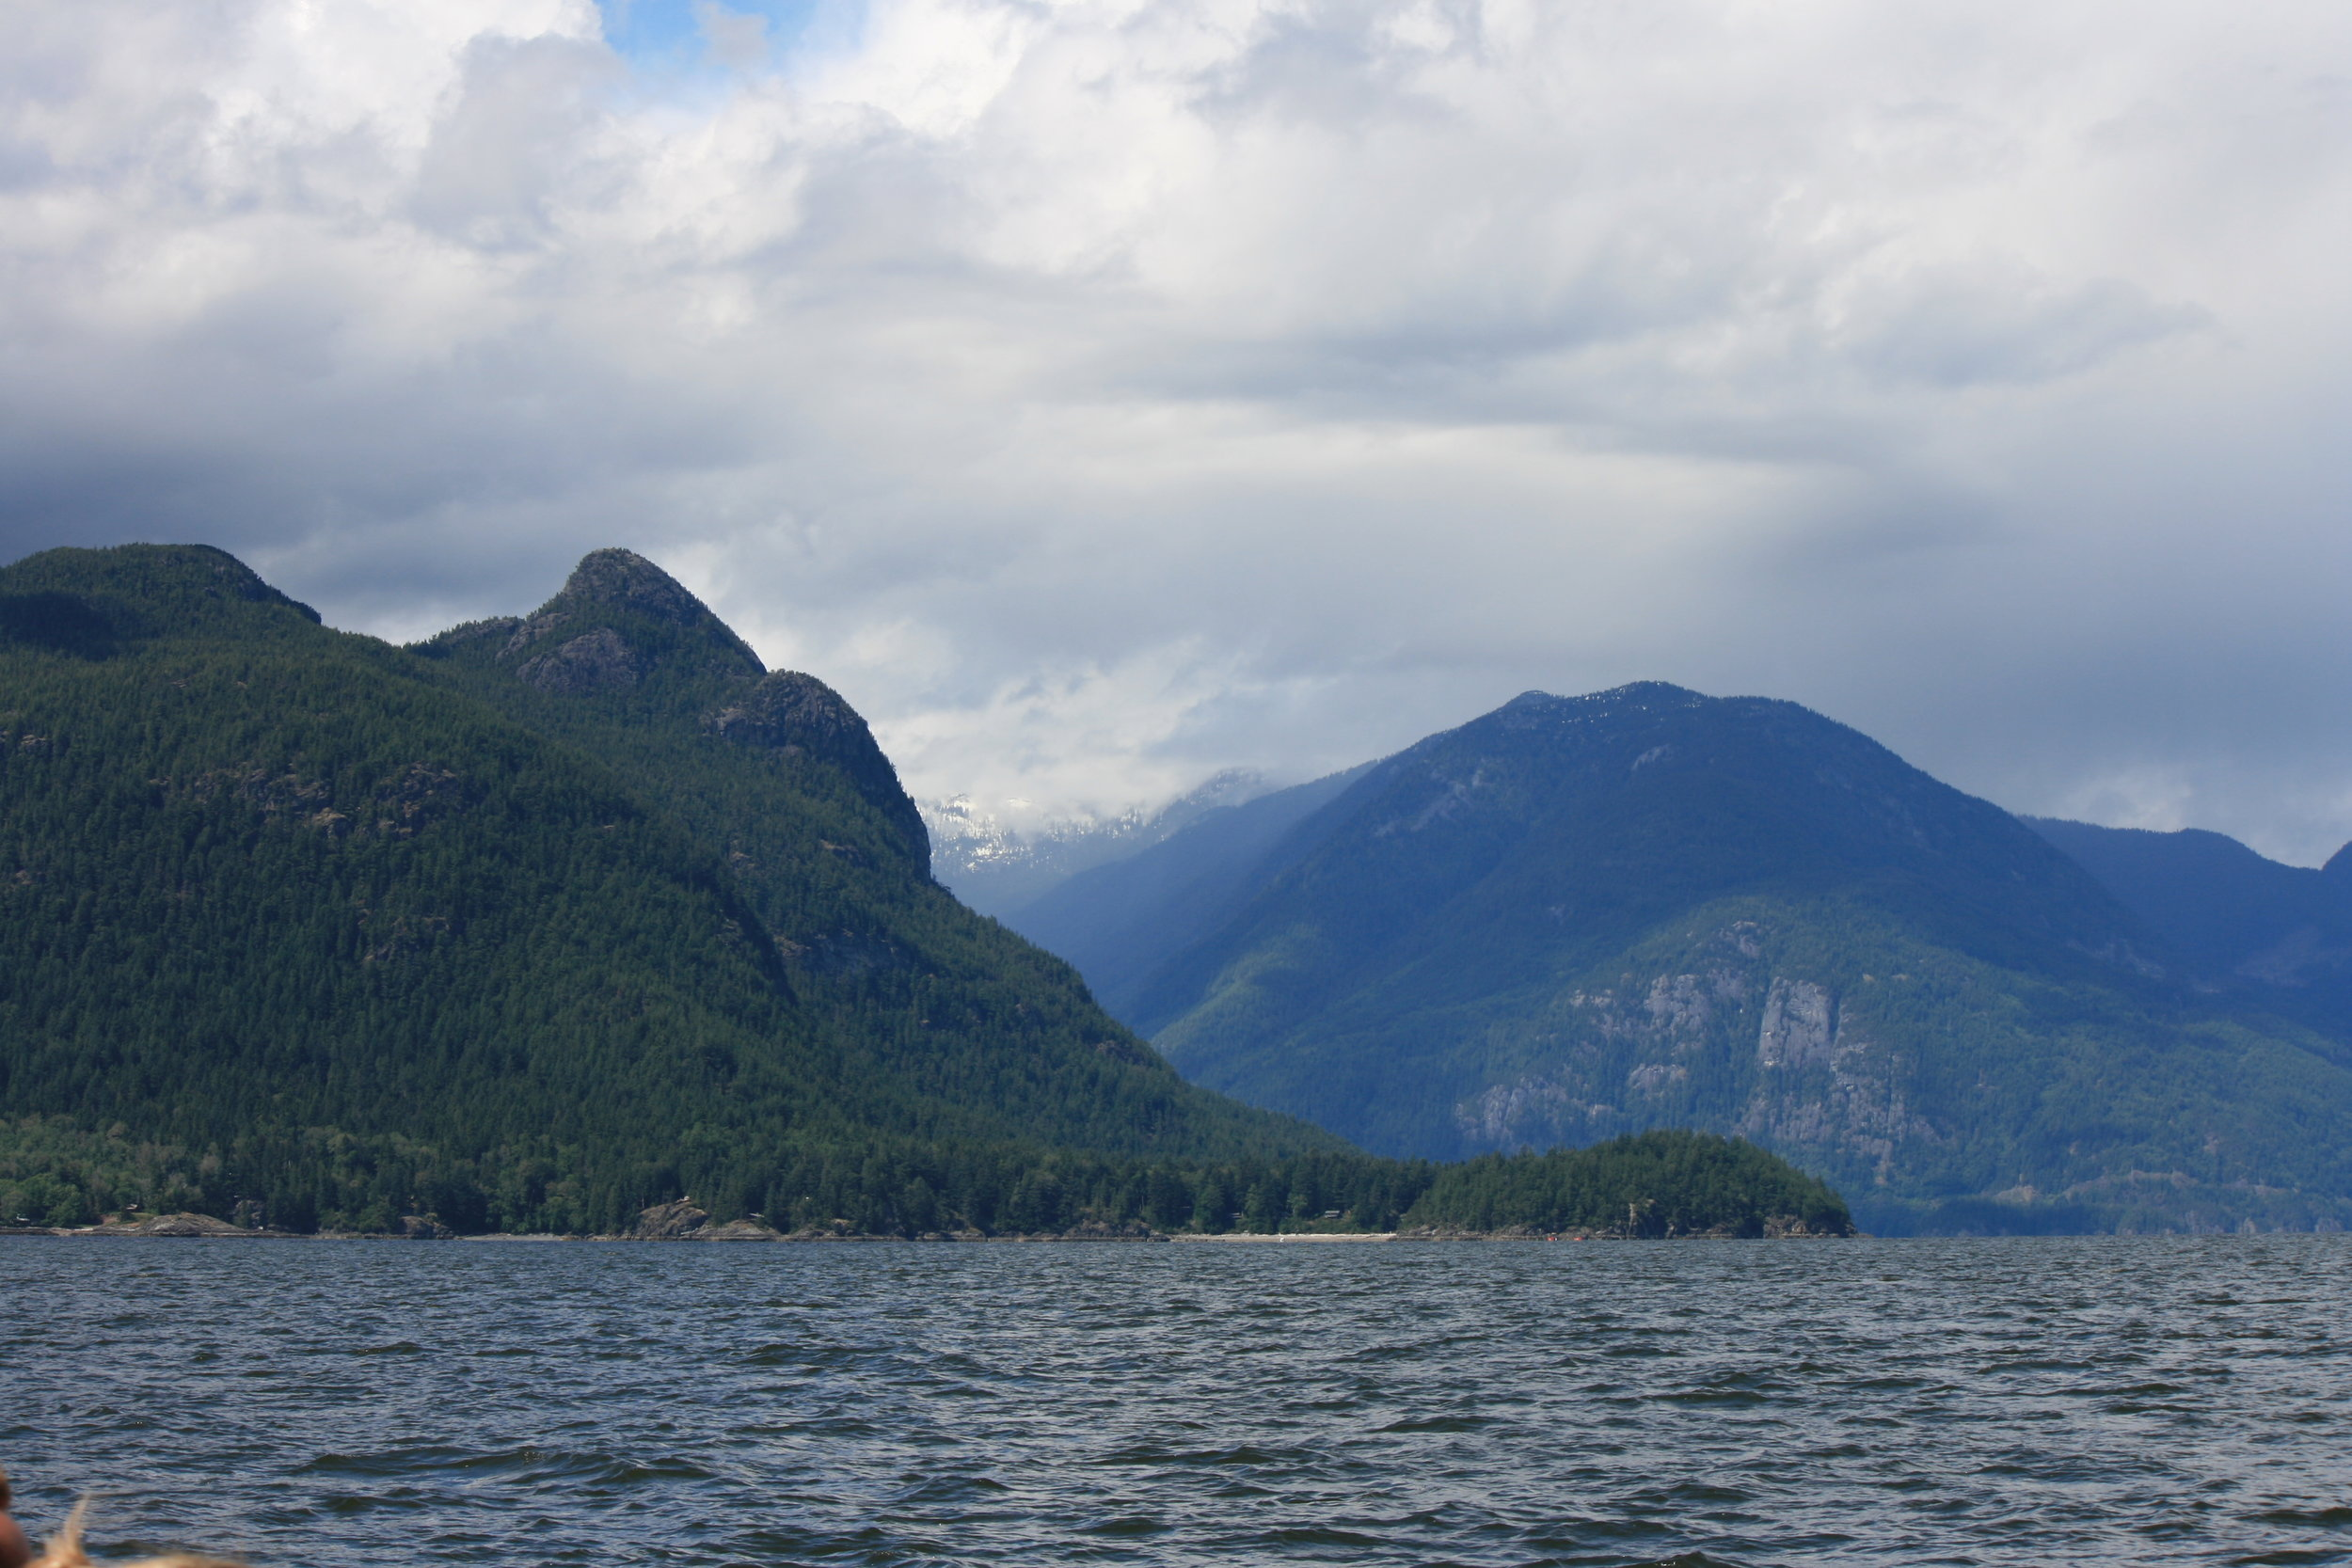 Howe Sound with the Coastal Mountains peaking through the clouds in the background. It's hard to imagine what the area would have looked like before being shaped by the glaciers! Photo by James Clyburn.